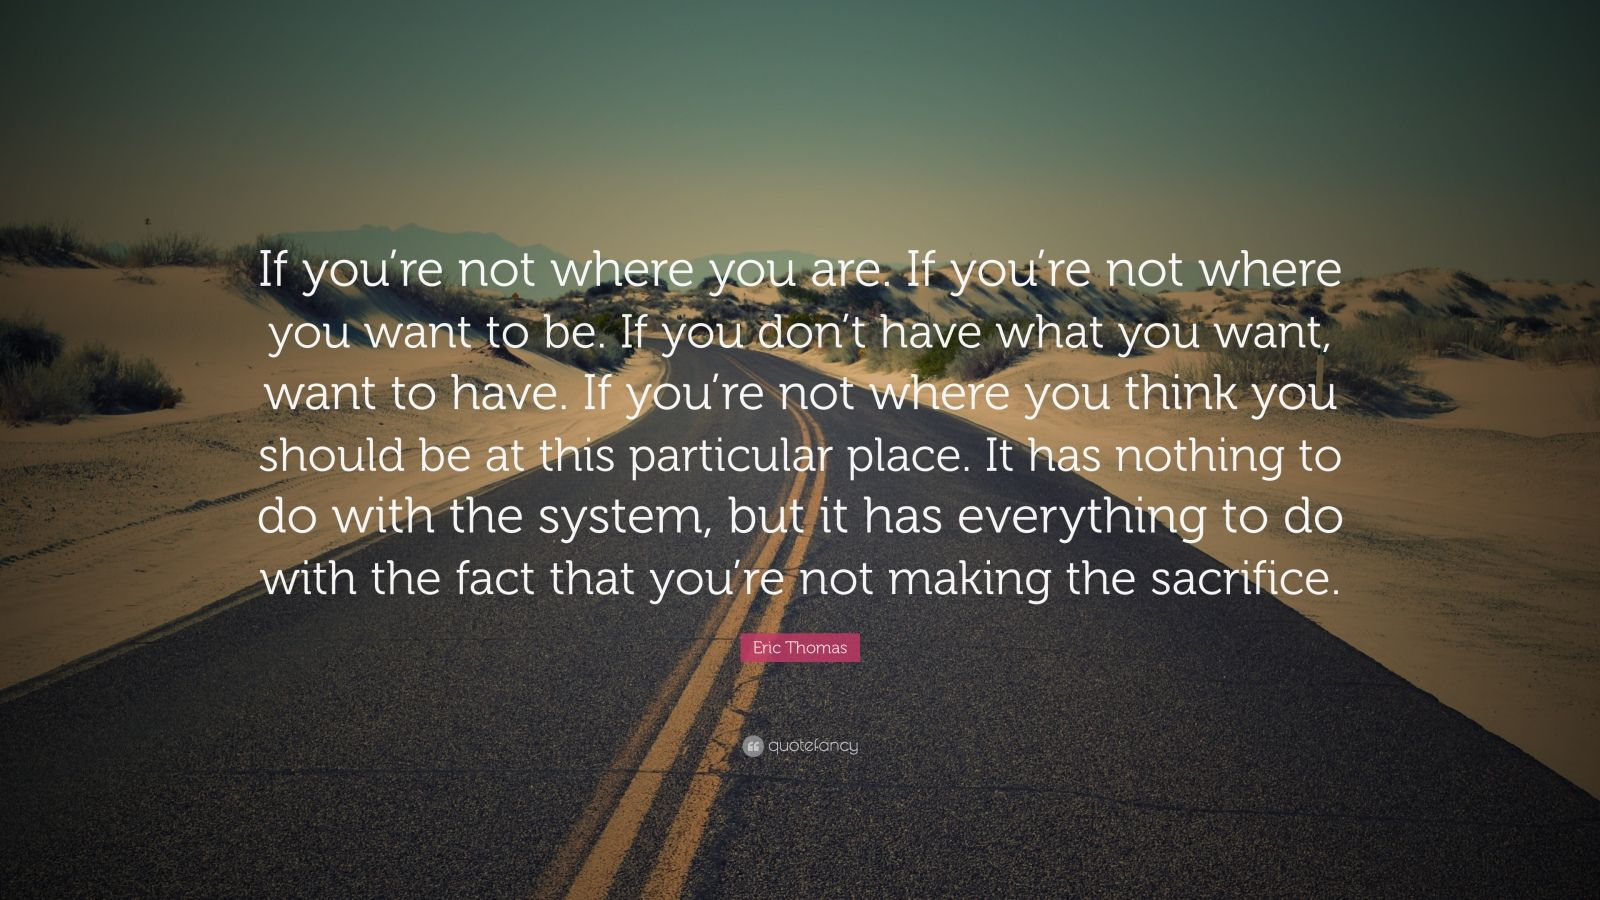 "Eric Thomas Quote: ""If you're not where you are. If you're not where you want to be. If you don't have what you want, want to have. If you're not where you think you should be at this particular place. It has nothing to do with the system, but it has everything to do with the fact that you're not making the sacrifice."""